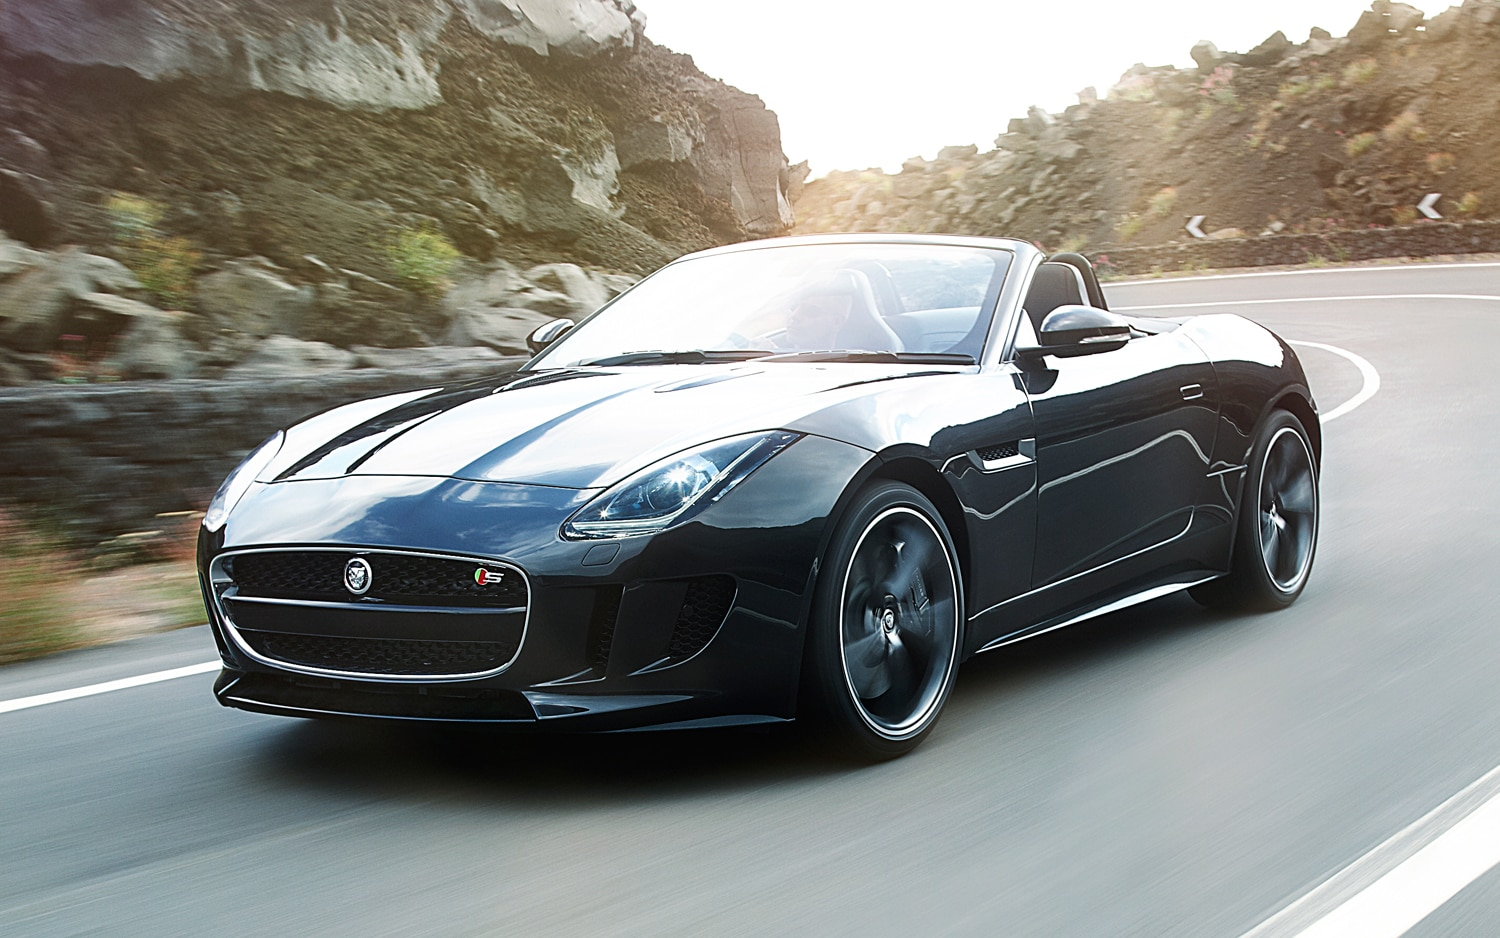 2014 Jaguar F Type Front View In Motion1